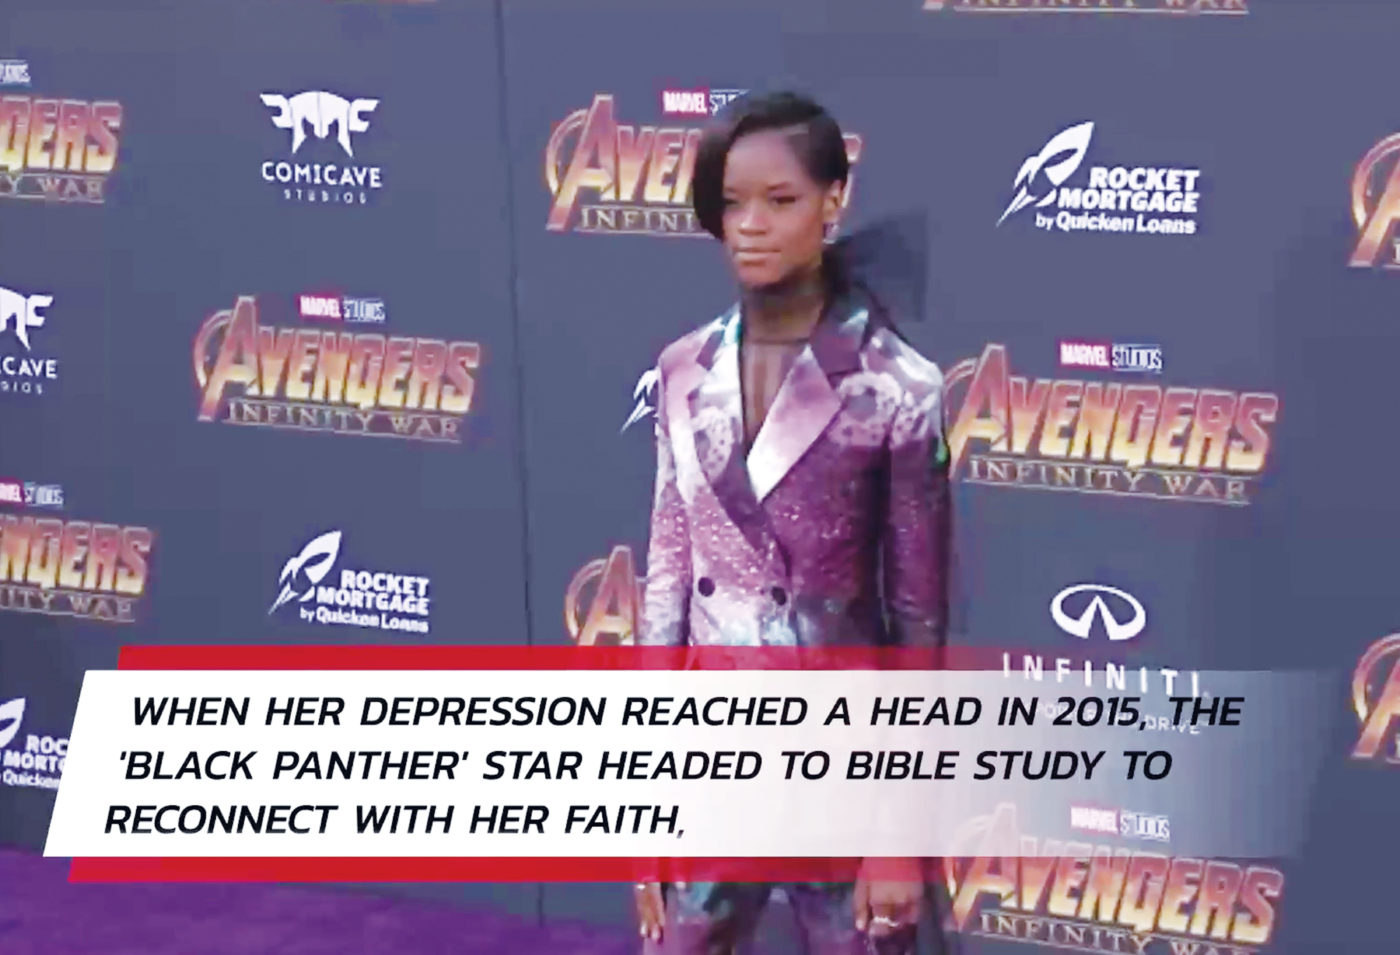 Letitia Wright, How 'Faith Saved Me from Depression'